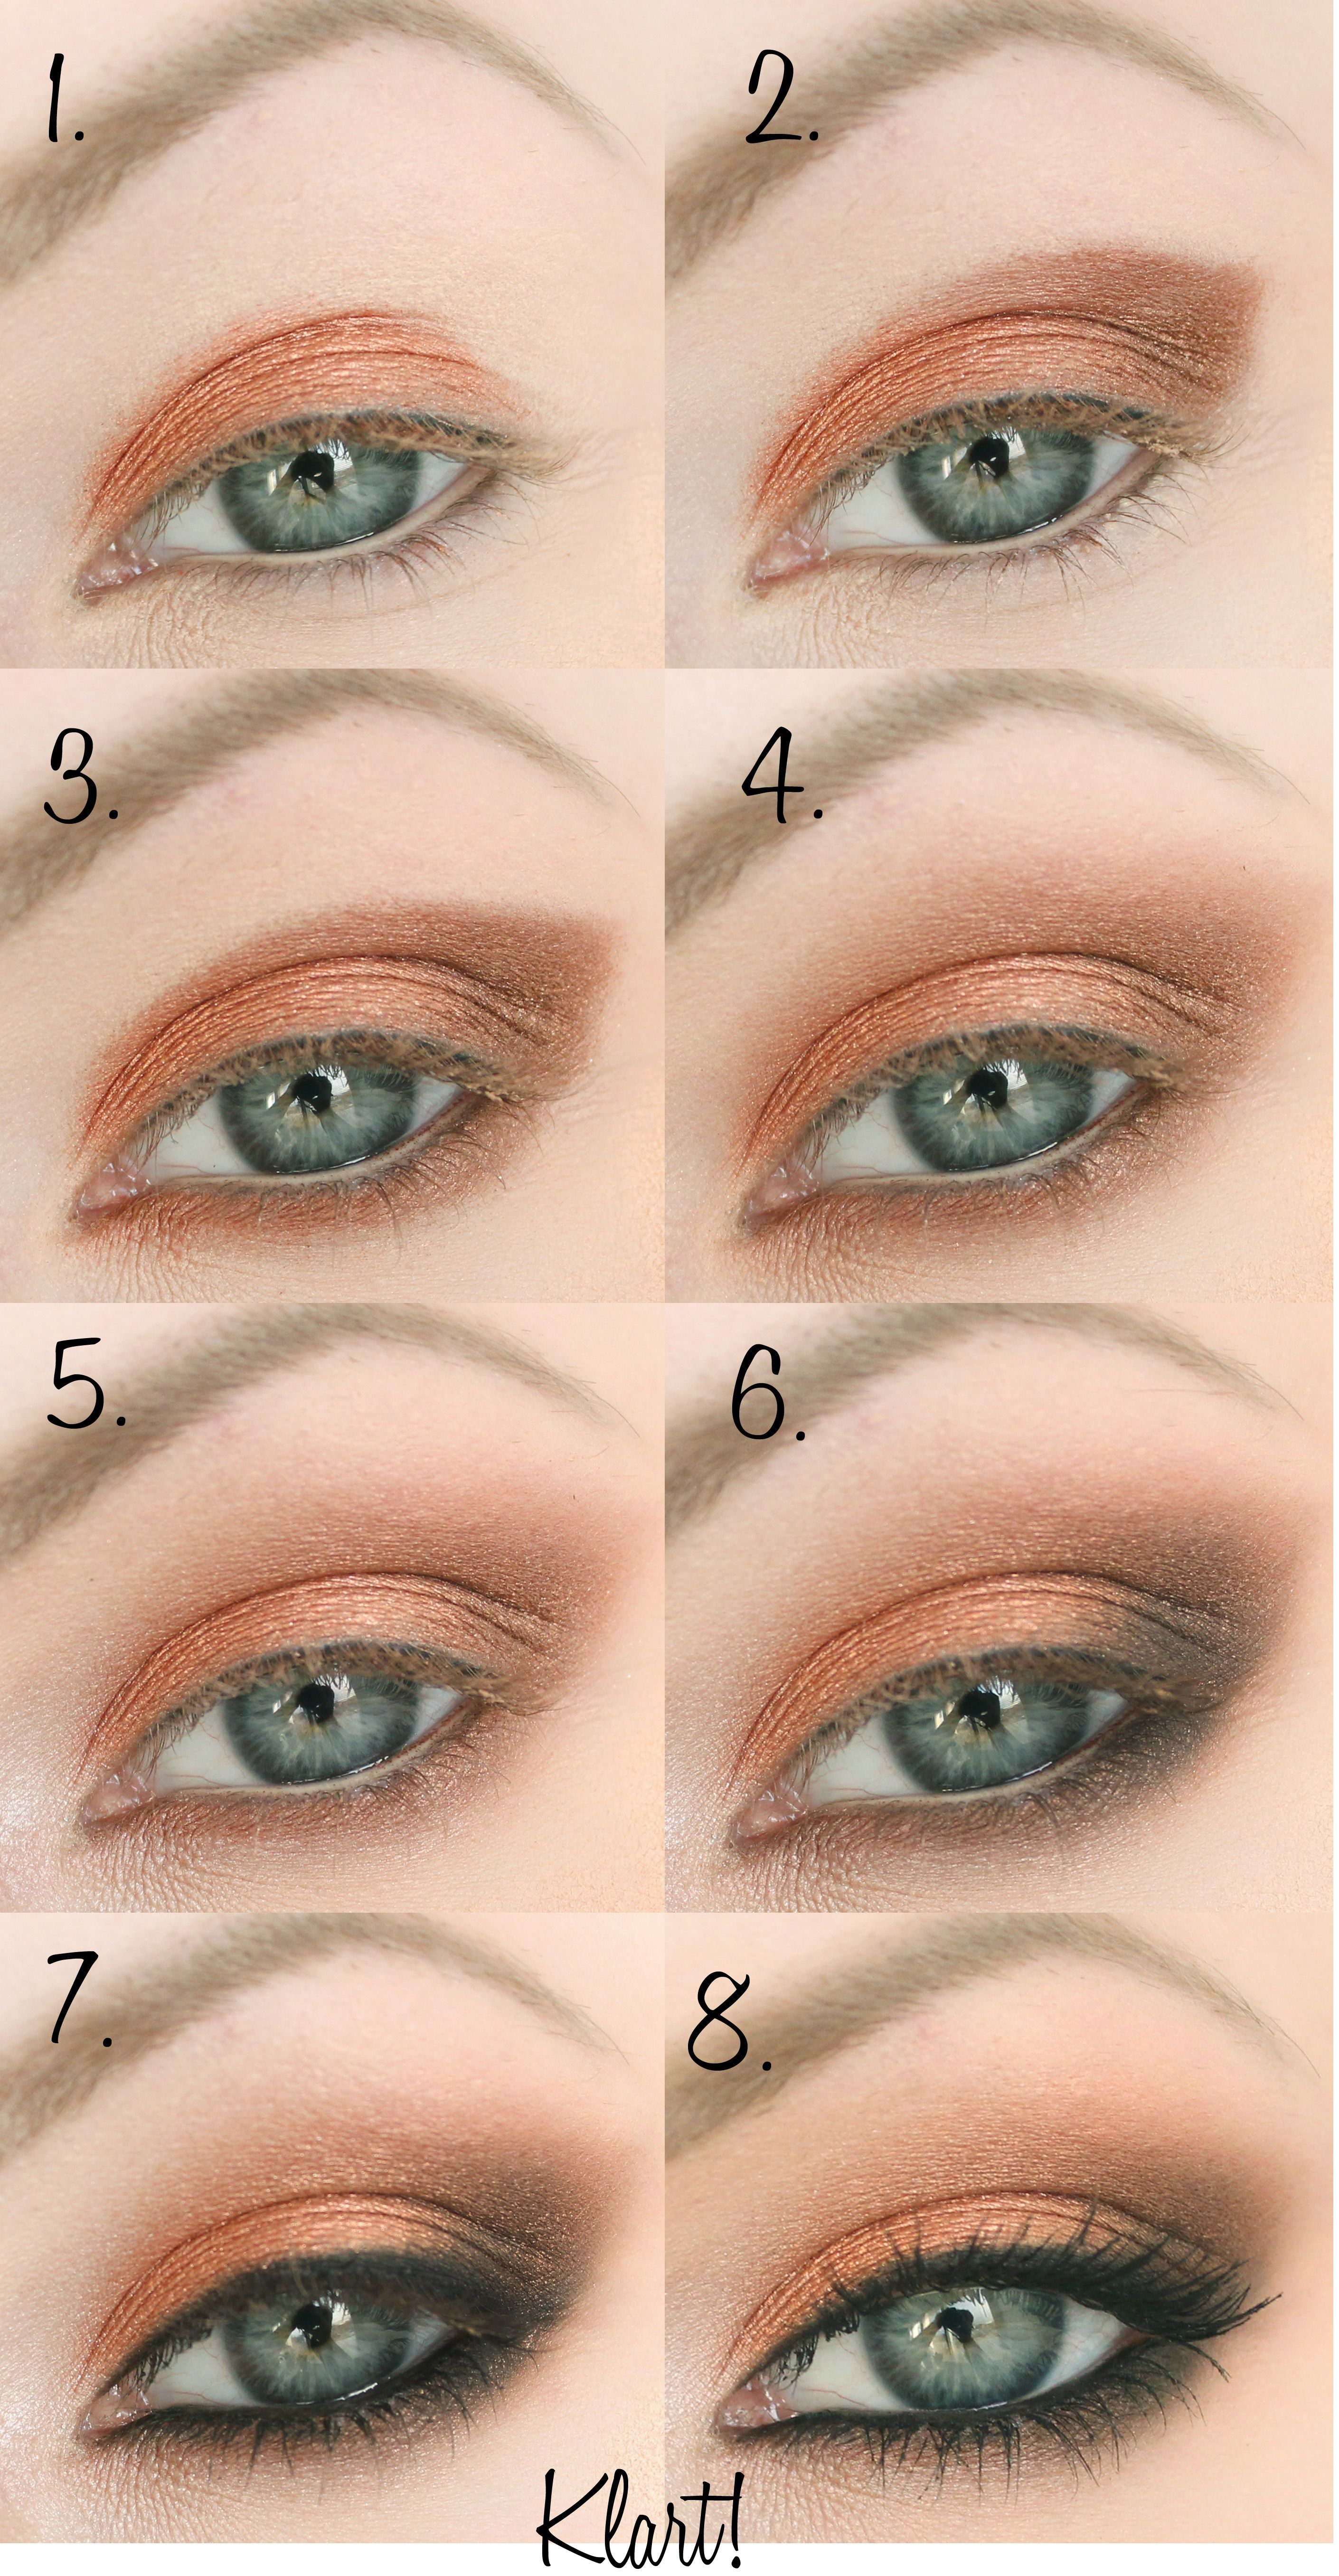 Step by step eye makeup pics my collection hoodedeyemakeup eye step by step eye copper eye makeup tutorial for beginners baditri Choice Image